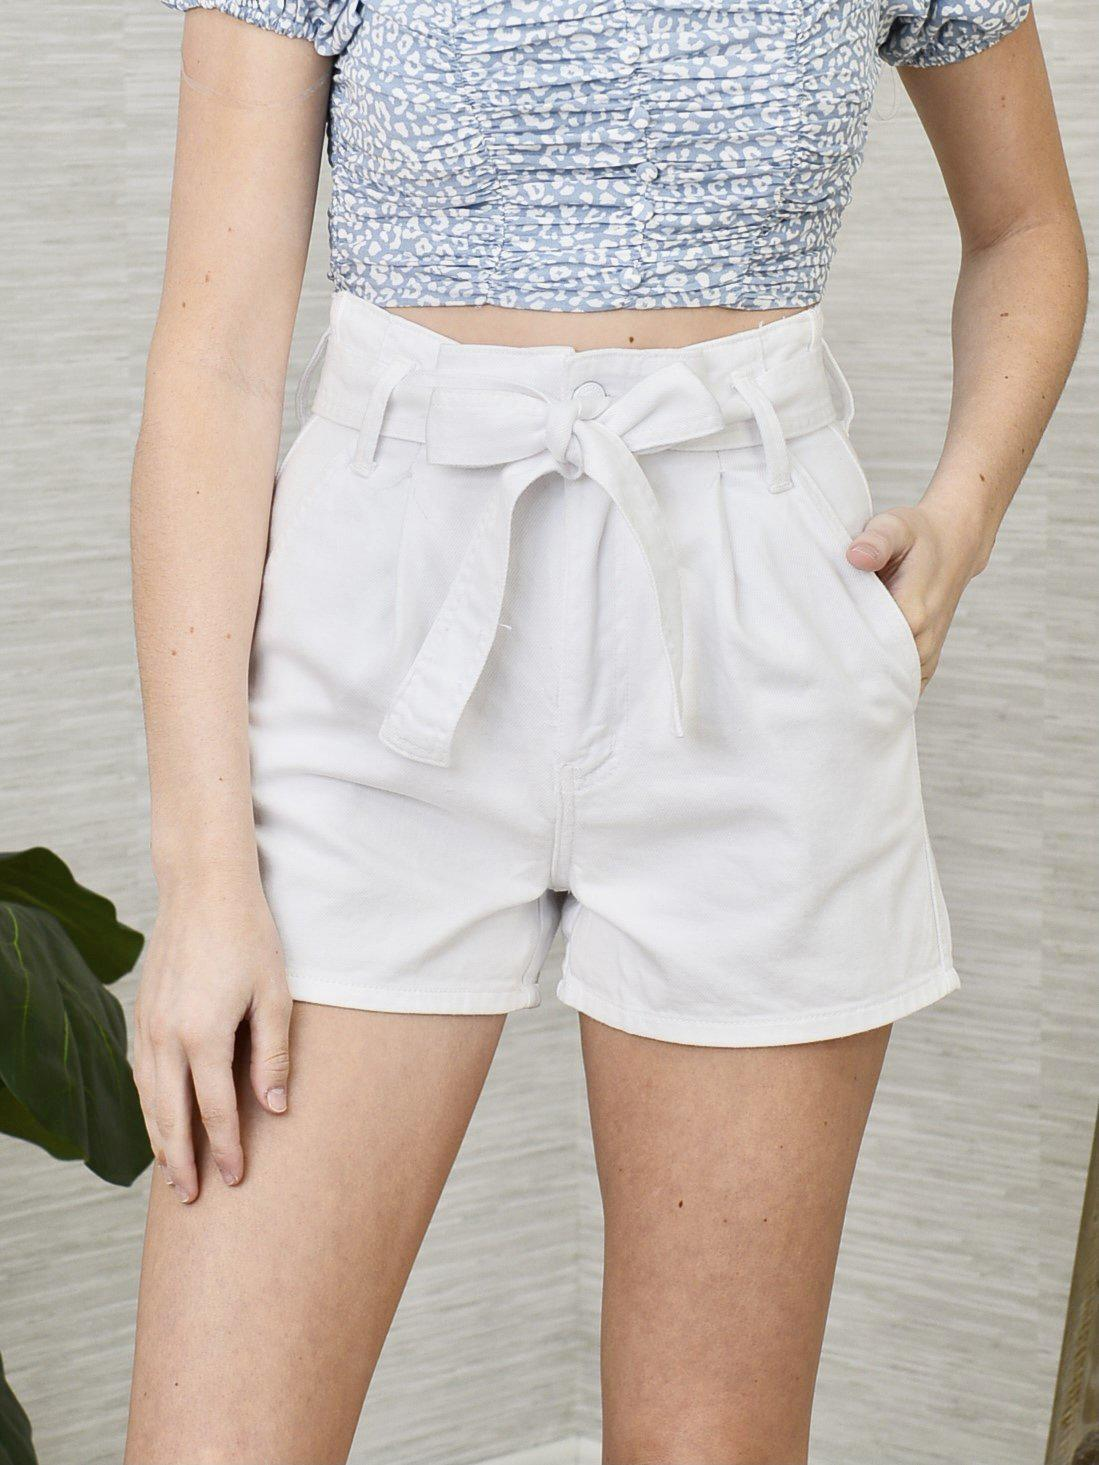 High on You Shorts-Women's -New Arrivals-Runway Seven